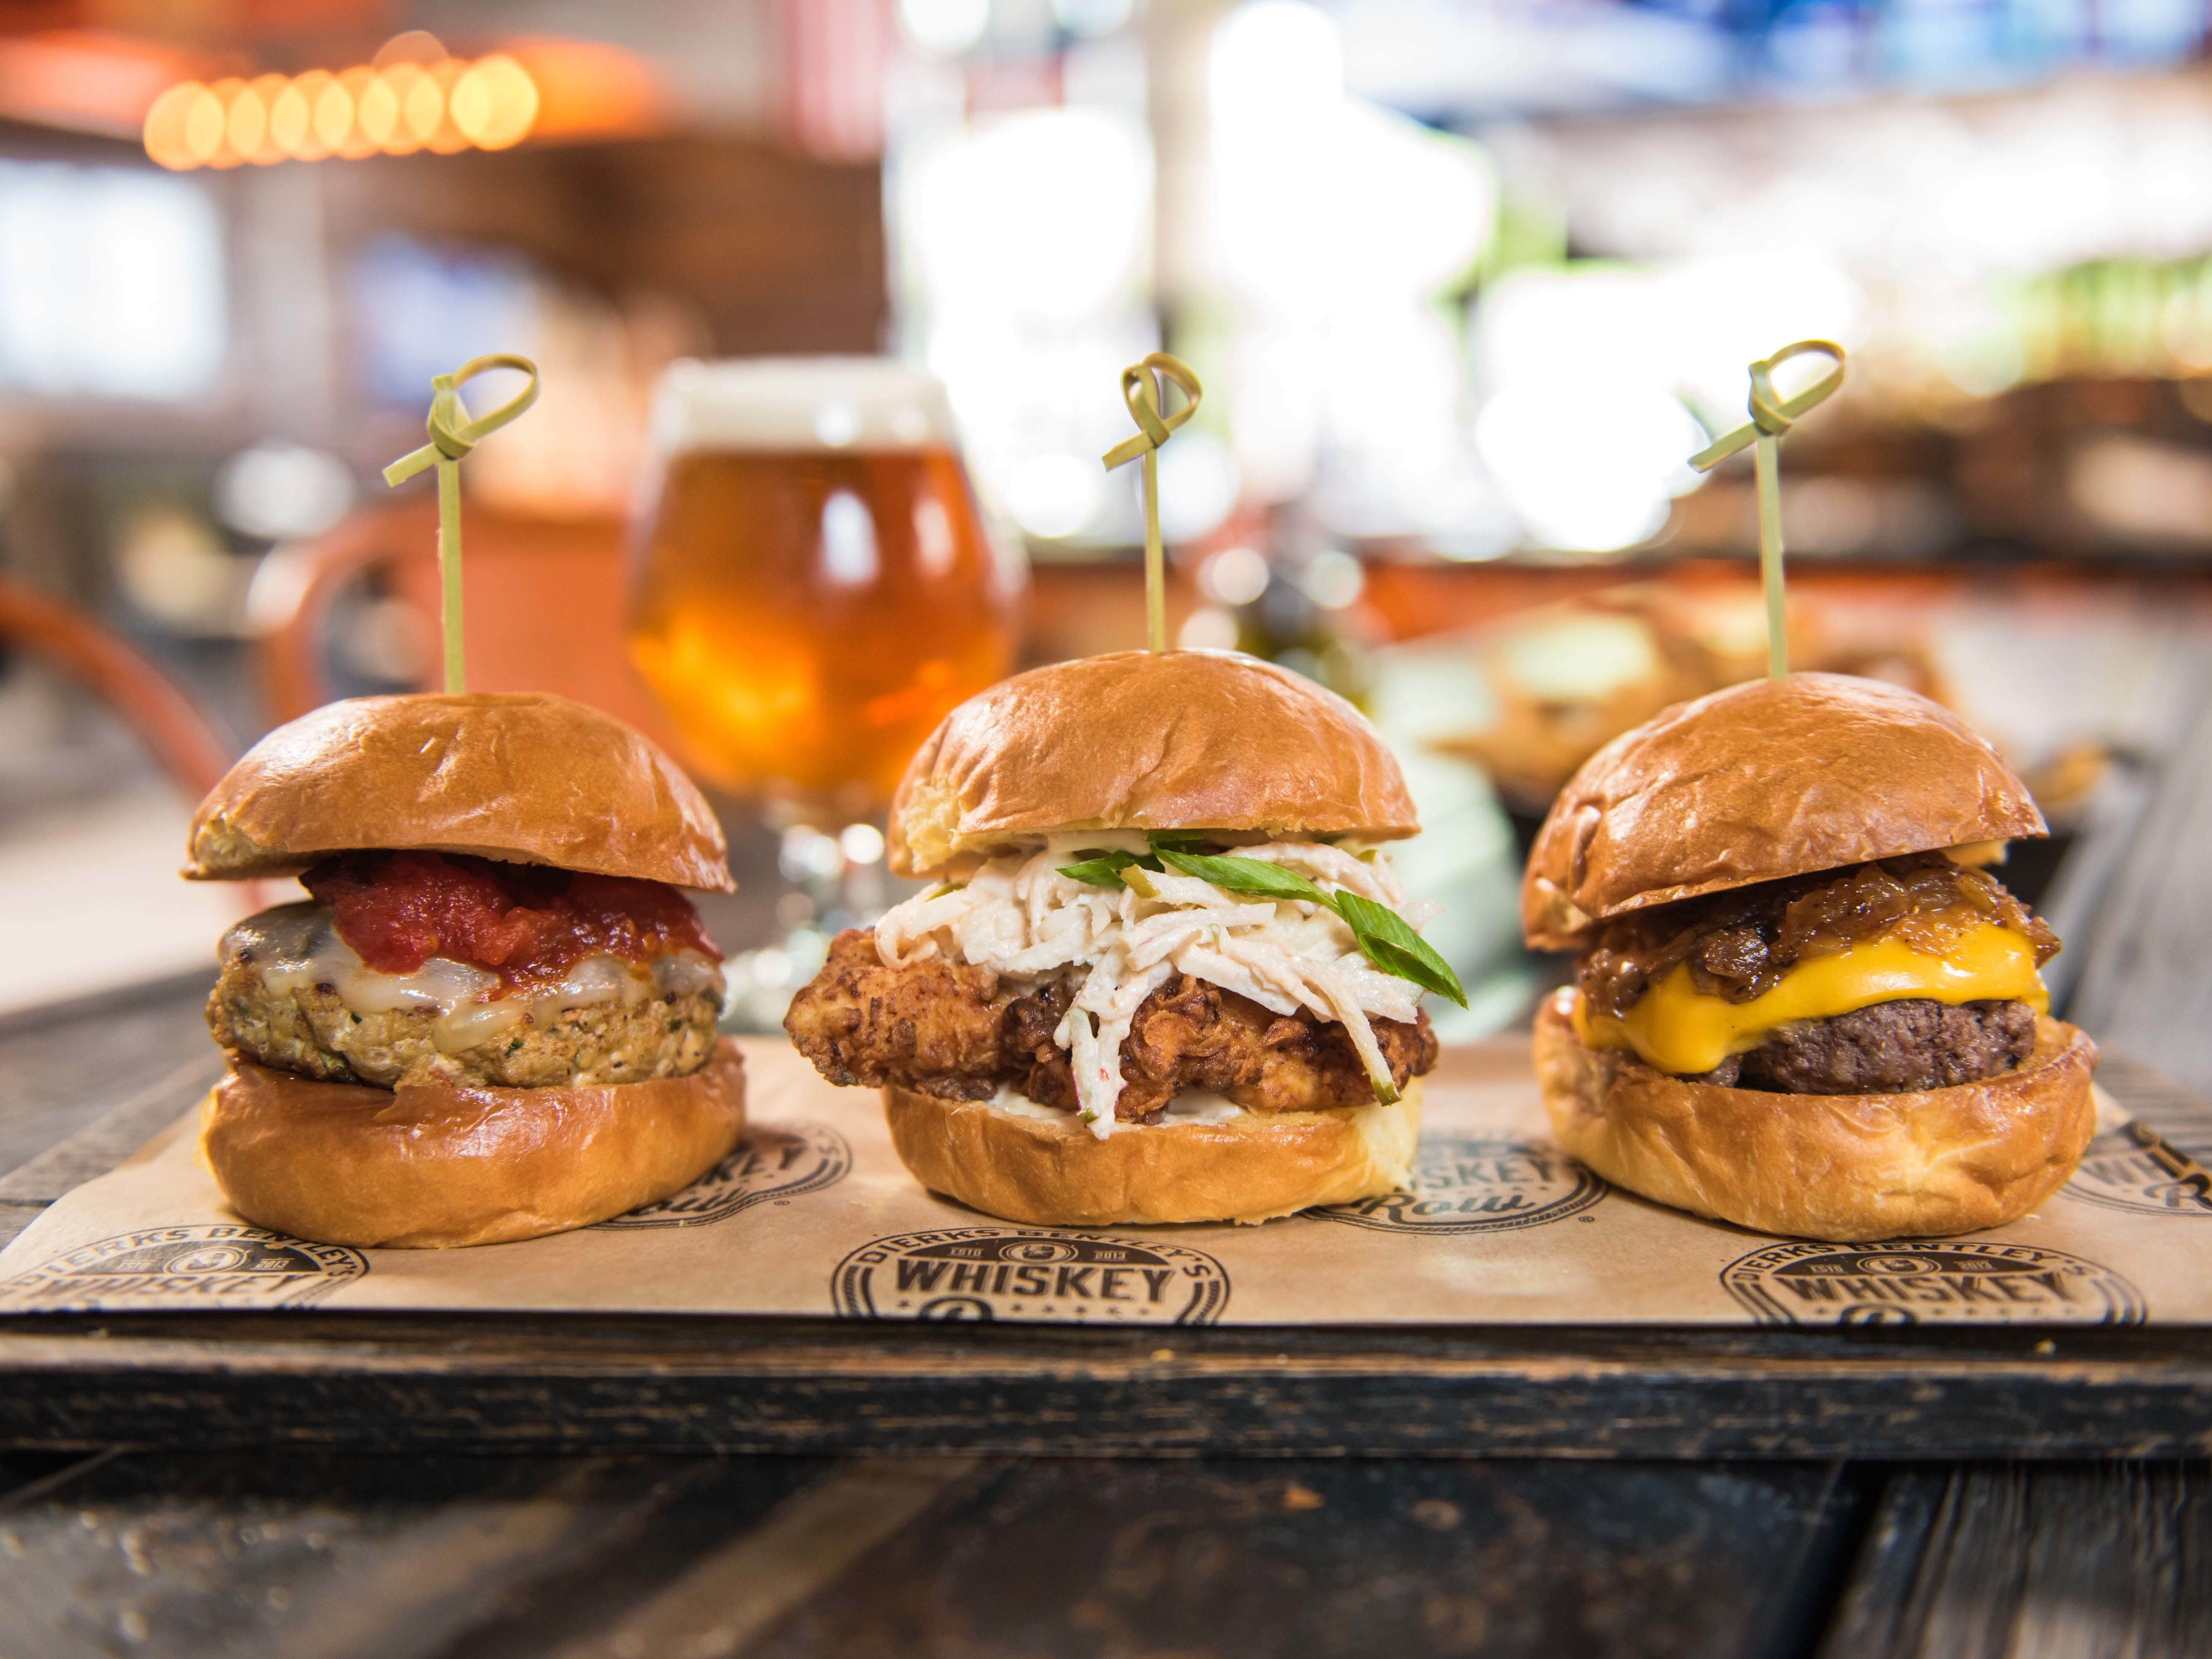 Riot Hospitality Group | Nov. 11, get 50 percent off at Farm & Craft, Hand Cut Burgers & Chophouse, Dierks Bentley's Whiskey Row, El Hefe and Riot House. For details, visit each restaurant's website. | Details: riothg.com.